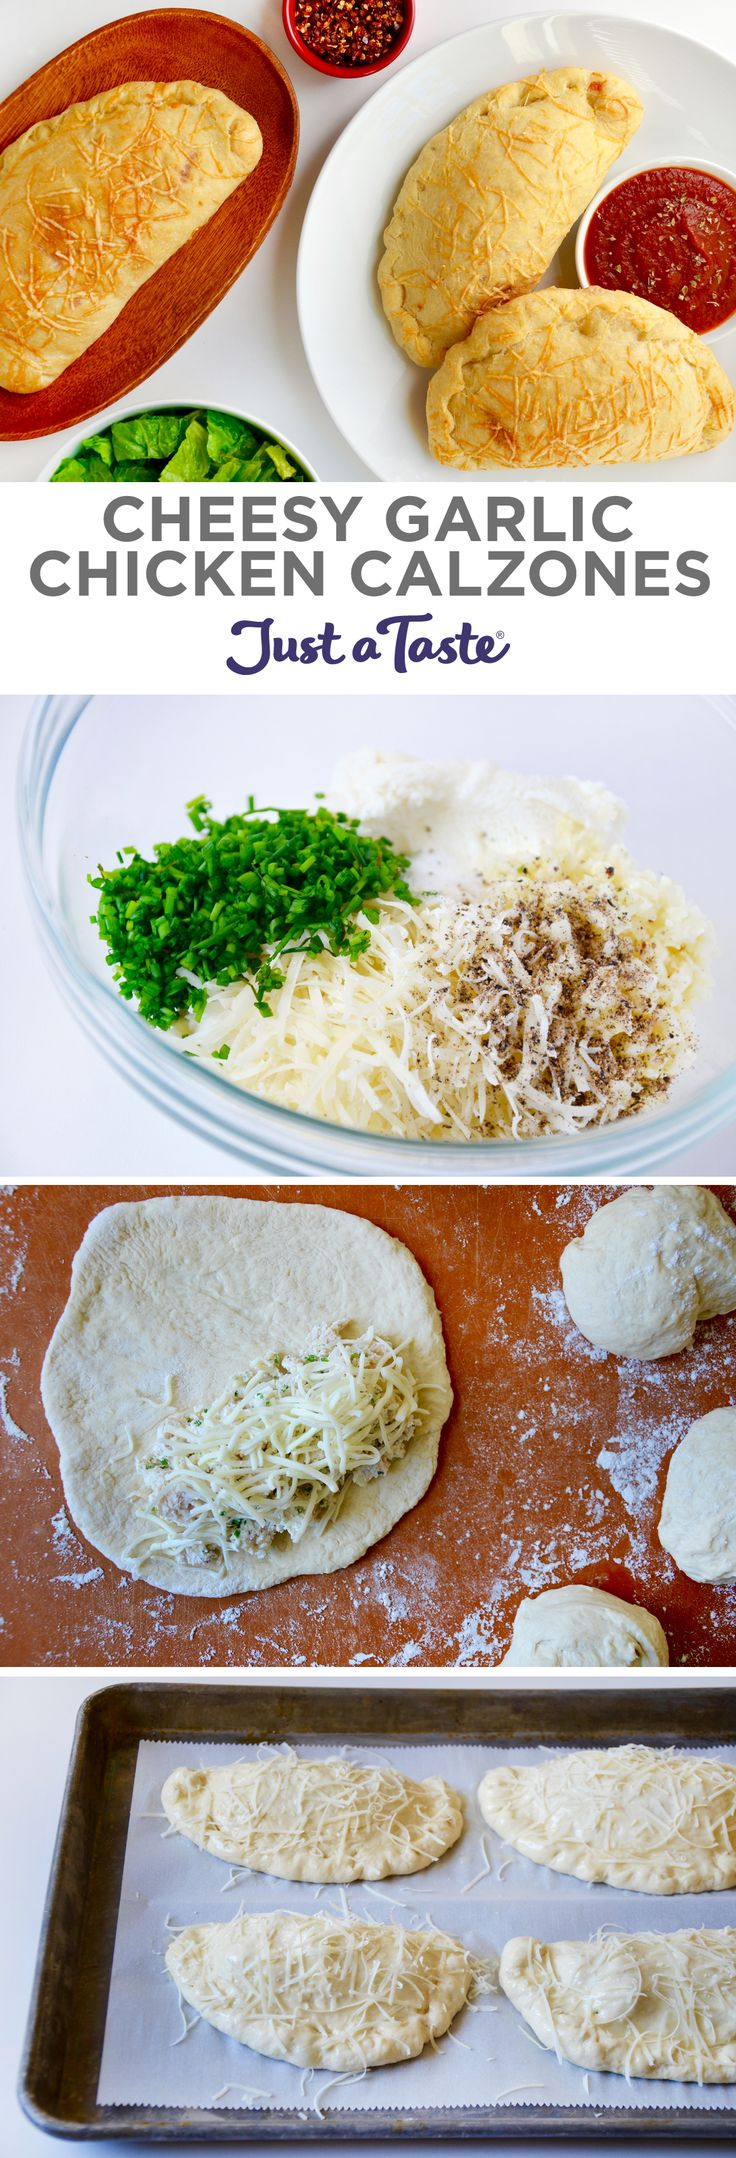 Cheesy Garlic Chicken Calzones recipe justataste.com #recipe #pizza